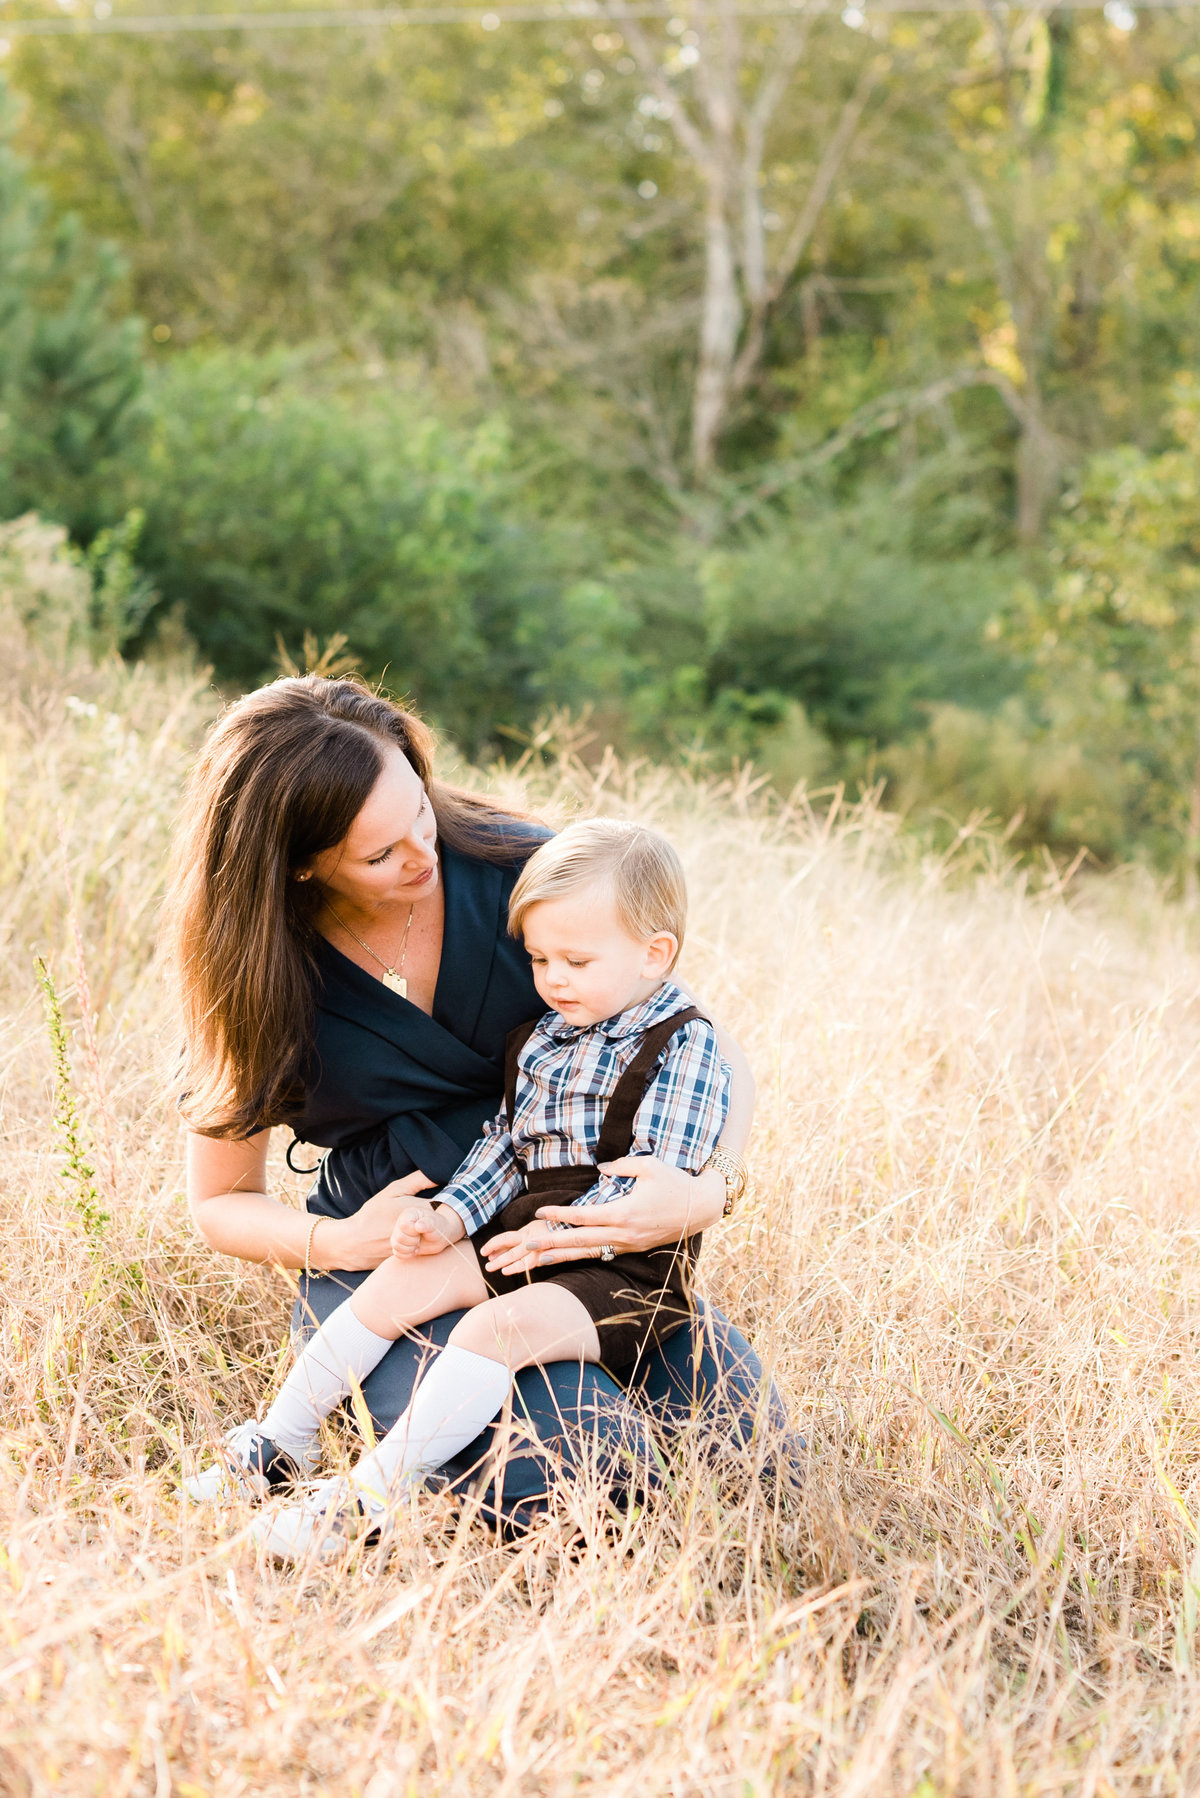 wake forest, nc family photography photo